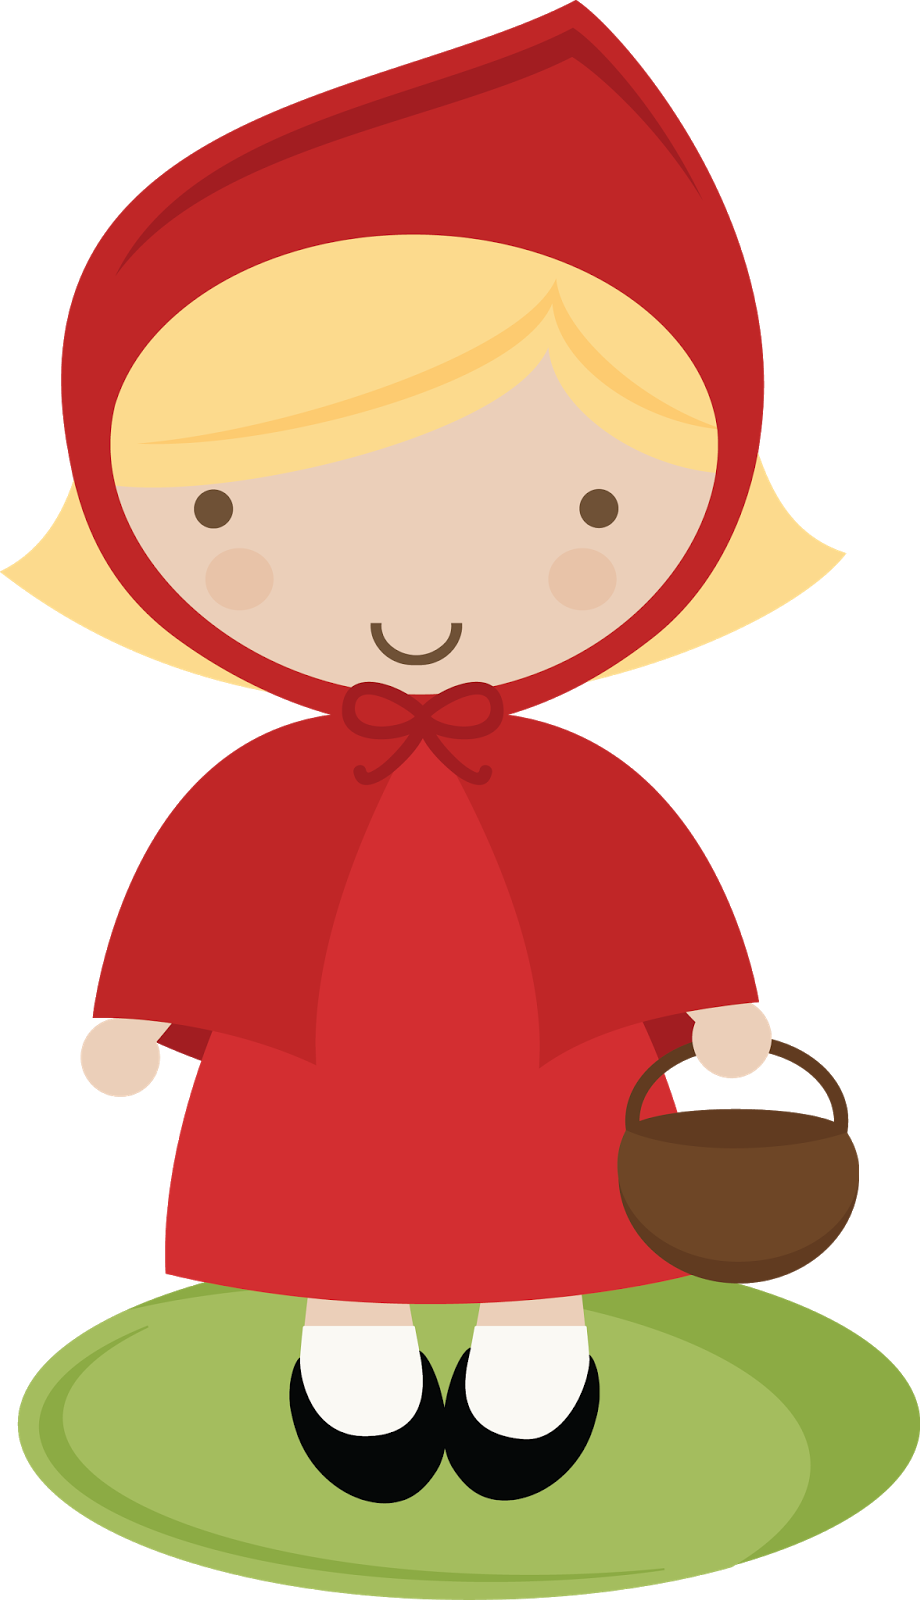 little red riding hood template clipart best blondie s fairy rh pinterest com red riding hood clipart black and white red riding hood clipart free